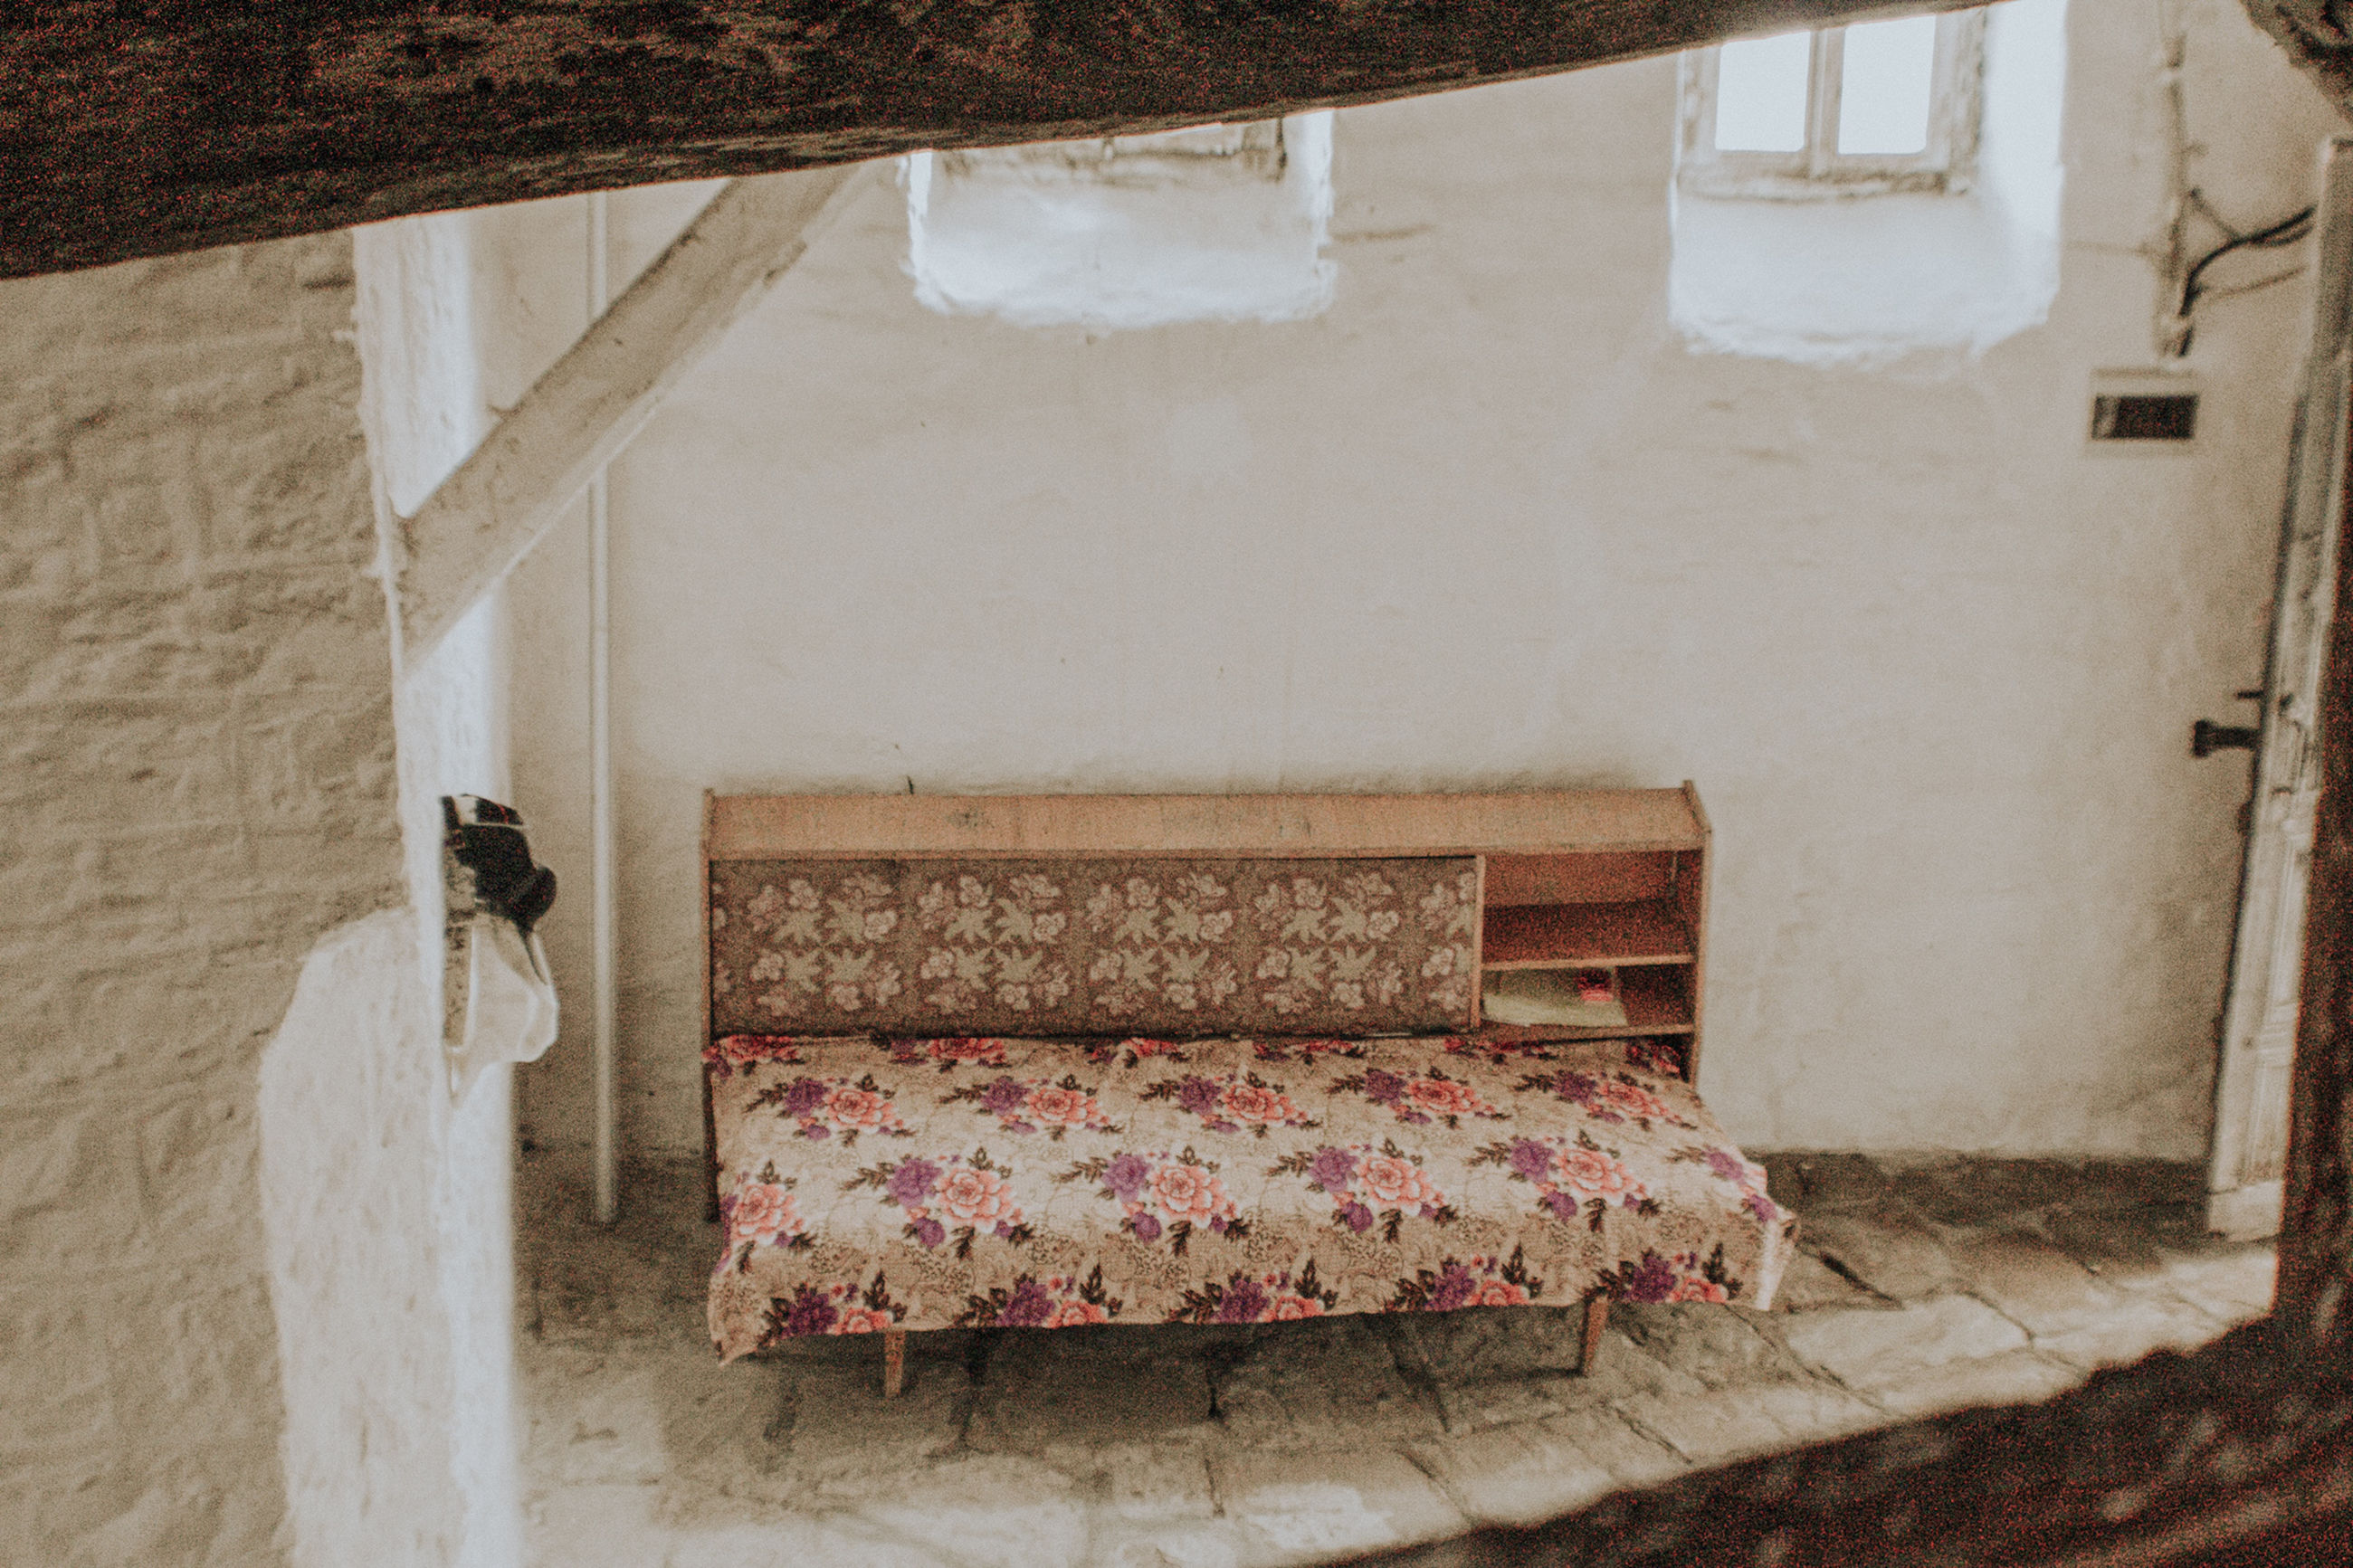 built structure, architecture, indoors, no people, wall - building feature, absence, furniture, bed, old, domestic room, empty, relaxation, wall, building, bedroom, pillow, day, window, abandoned